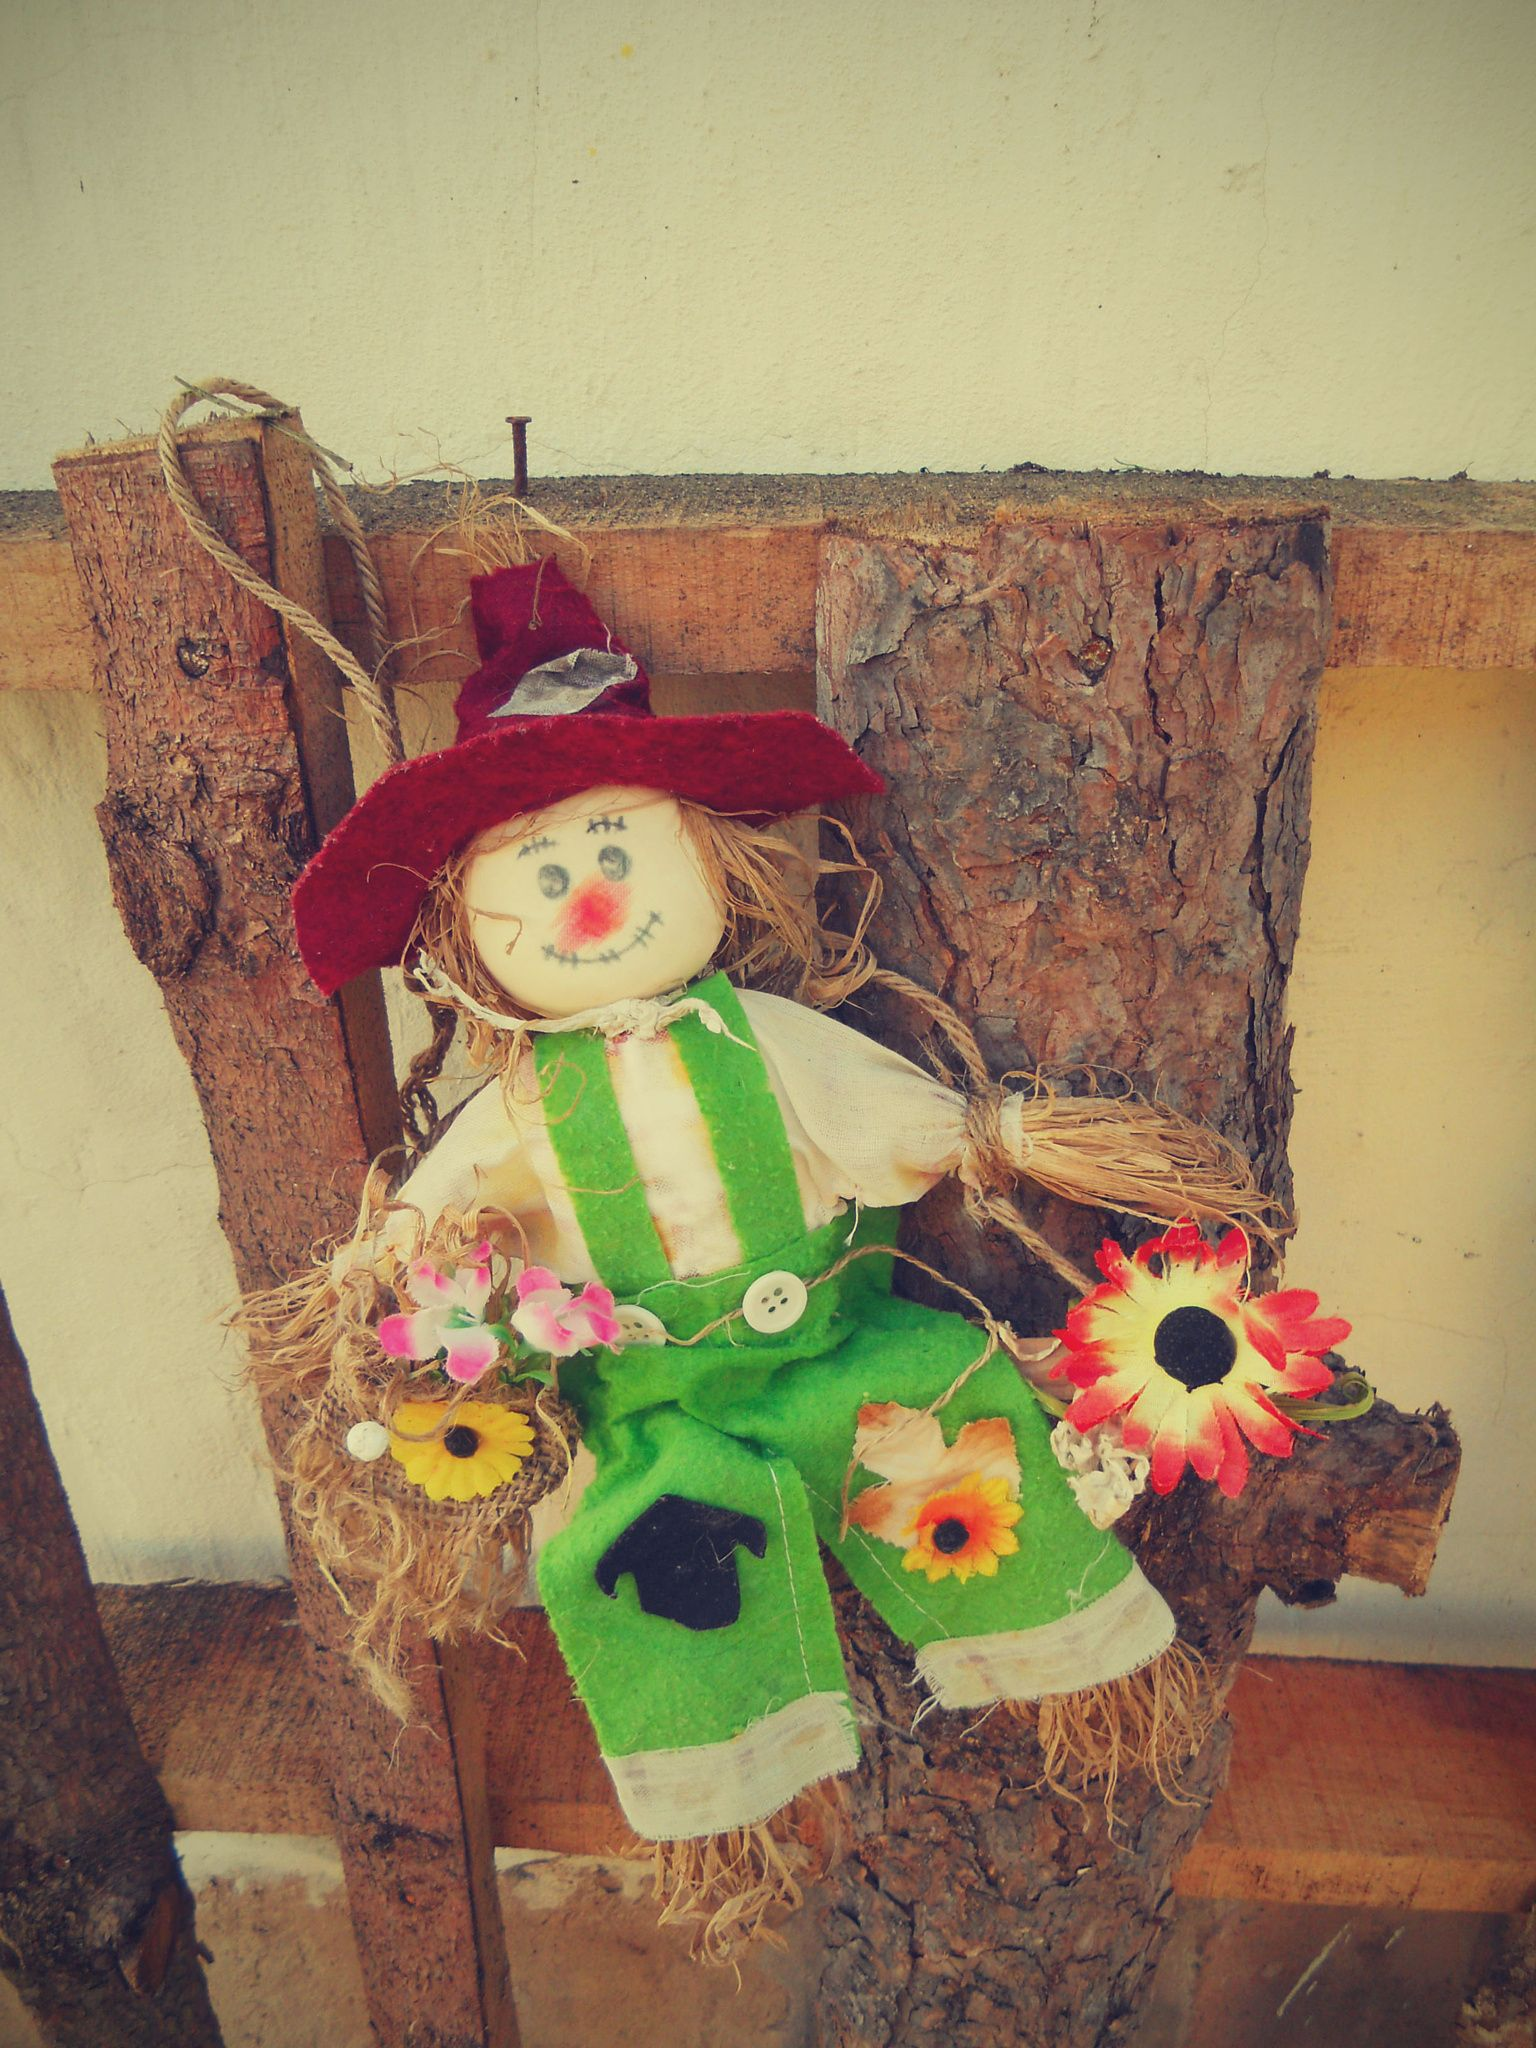 Cheerful Scarecrow hanging on wooden boards - Cheerful cute Scarecrow,  rag-doll hanging on wooden boards against the background yellow wall.